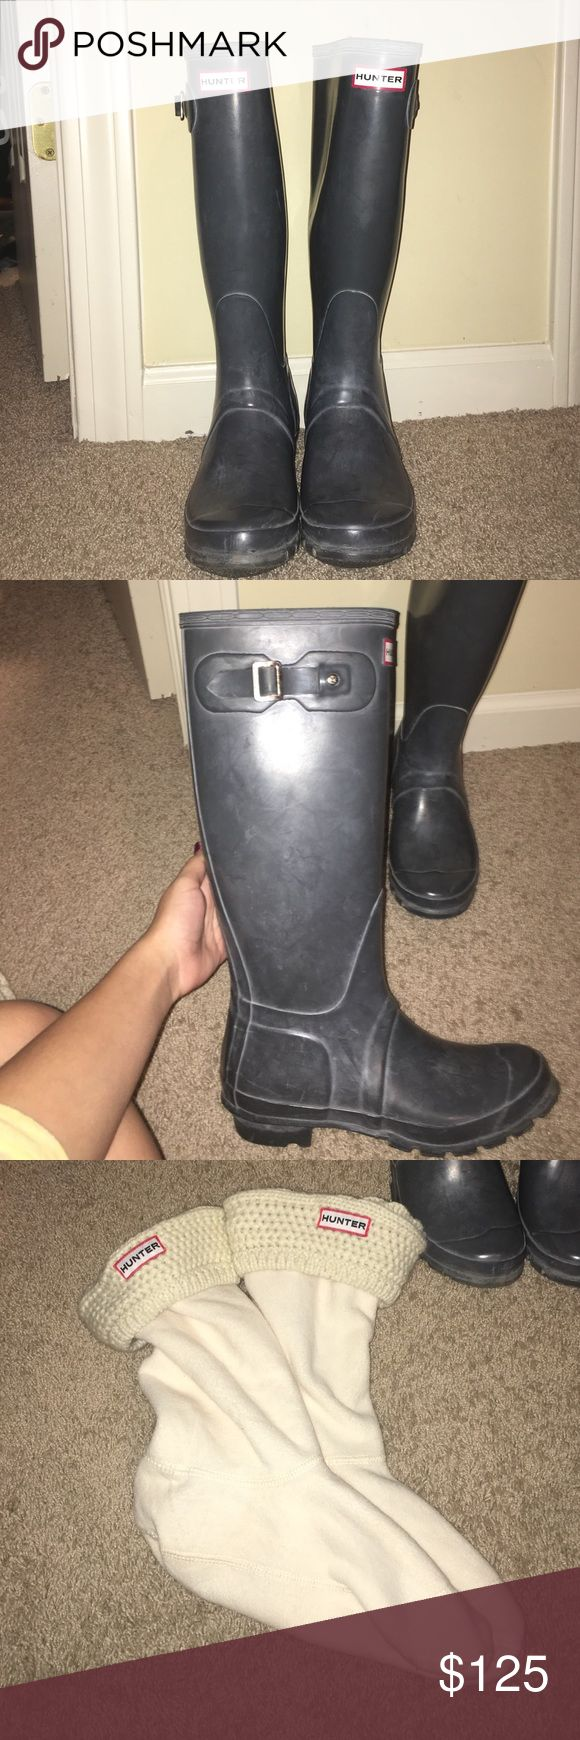 Tall grey Hunter Rain boots REAL hunter tall grey rain boots. Great condition. Only worn ONCE. INCLUDES real hunter boot socks with the boots. Socks are size M/L which is shoe sizes 6-8. Boots are size 7 Hunter Boots Shoes Winter & Rain Boots